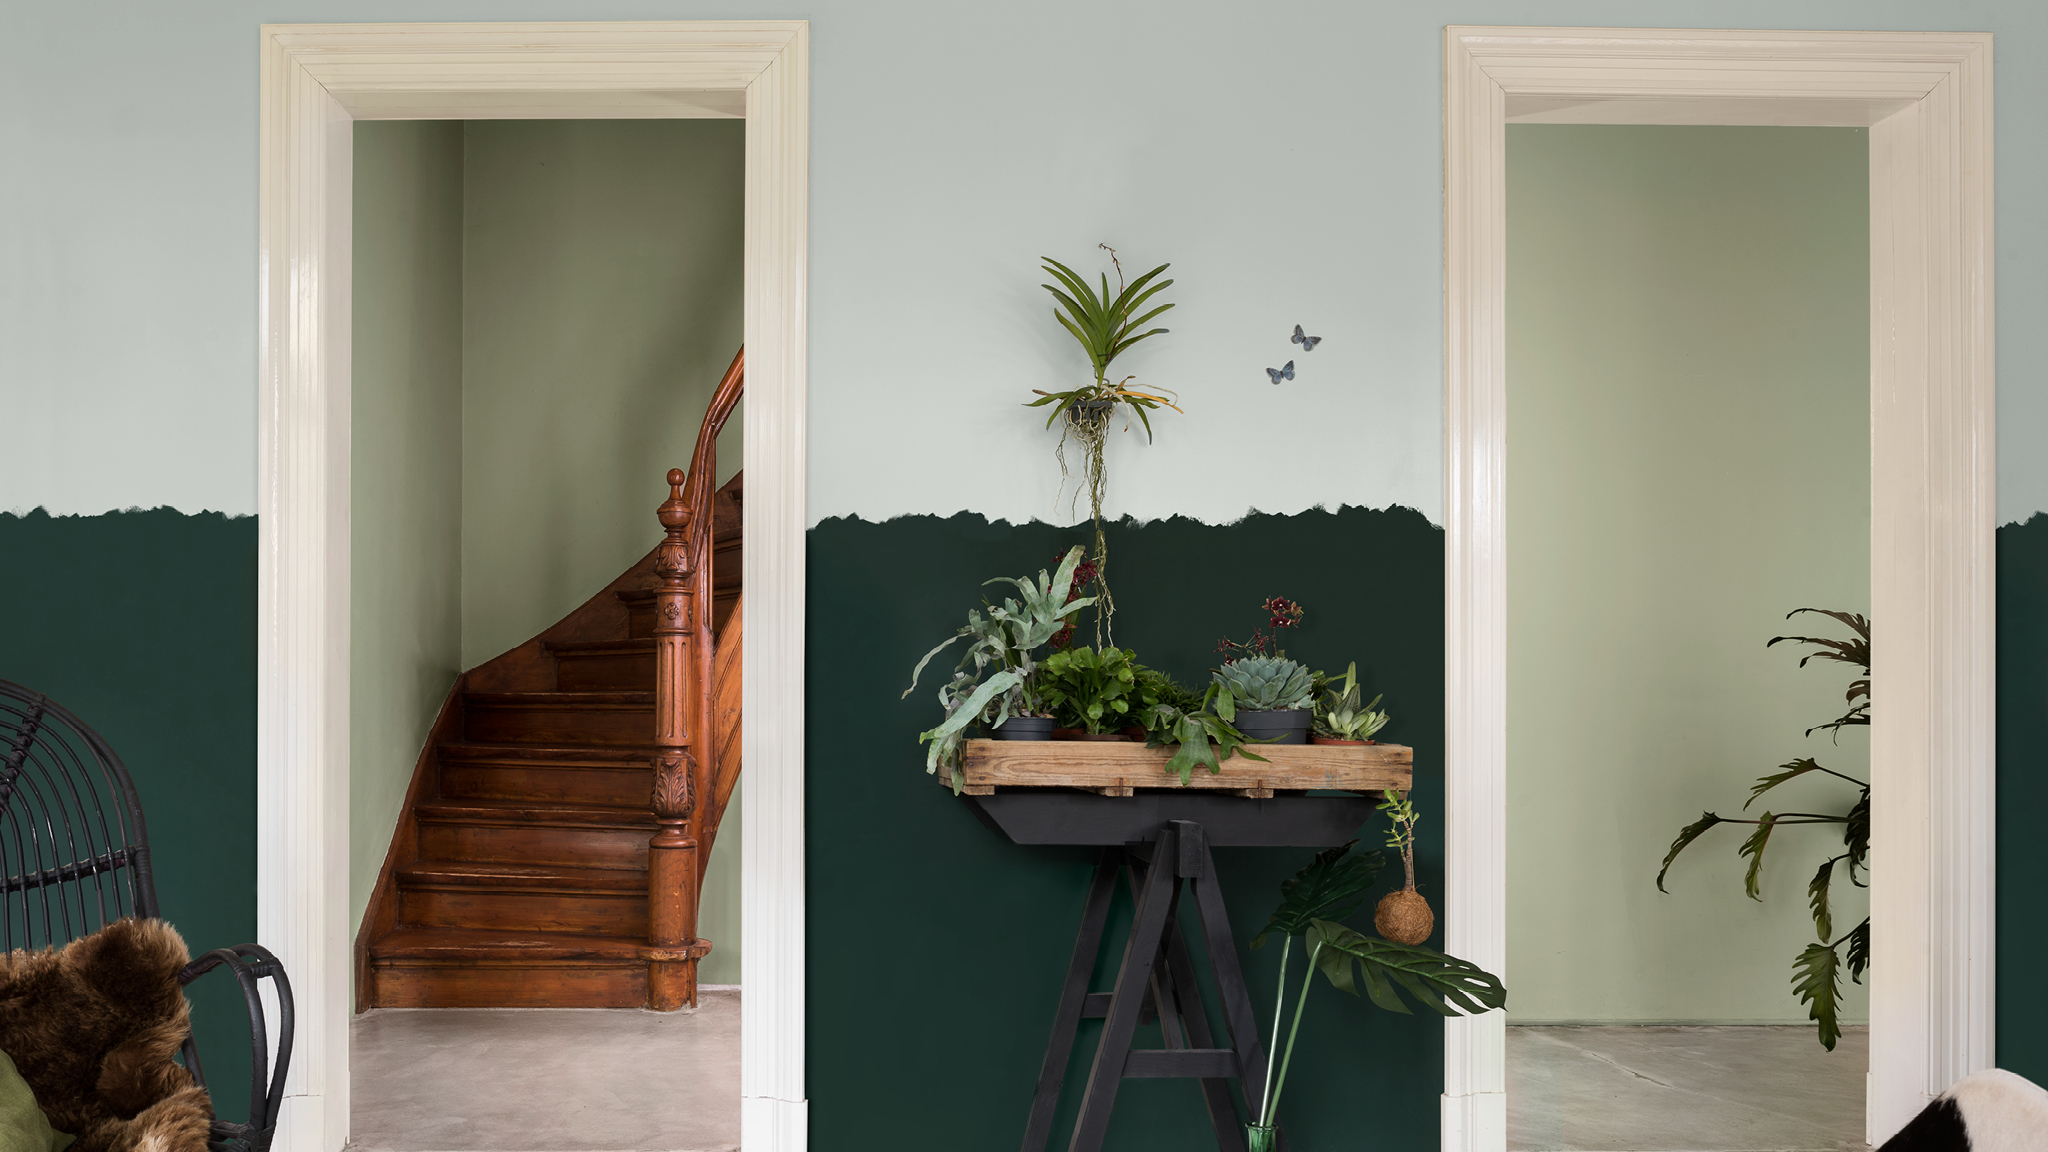 Take a relaxed attitude to paint avoiding hard lines for a more organic look.